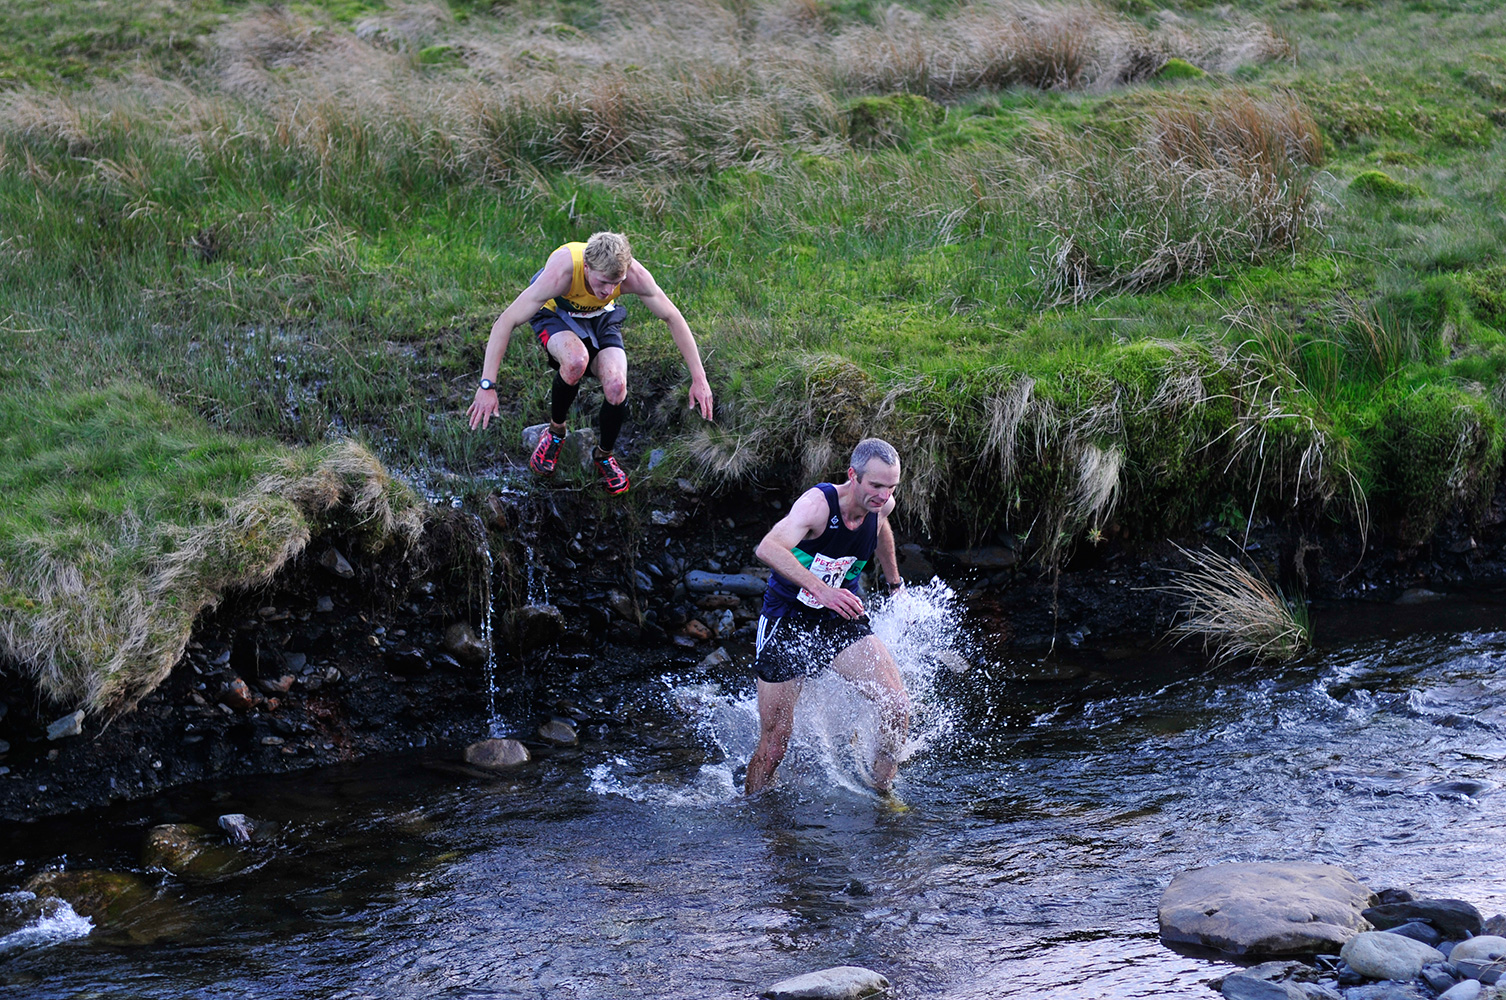 A 7.6 mile circuit over Blencathra from Mungrisdale in Cumbria. Competitors crossing the River Glendermackin at the end of the race.